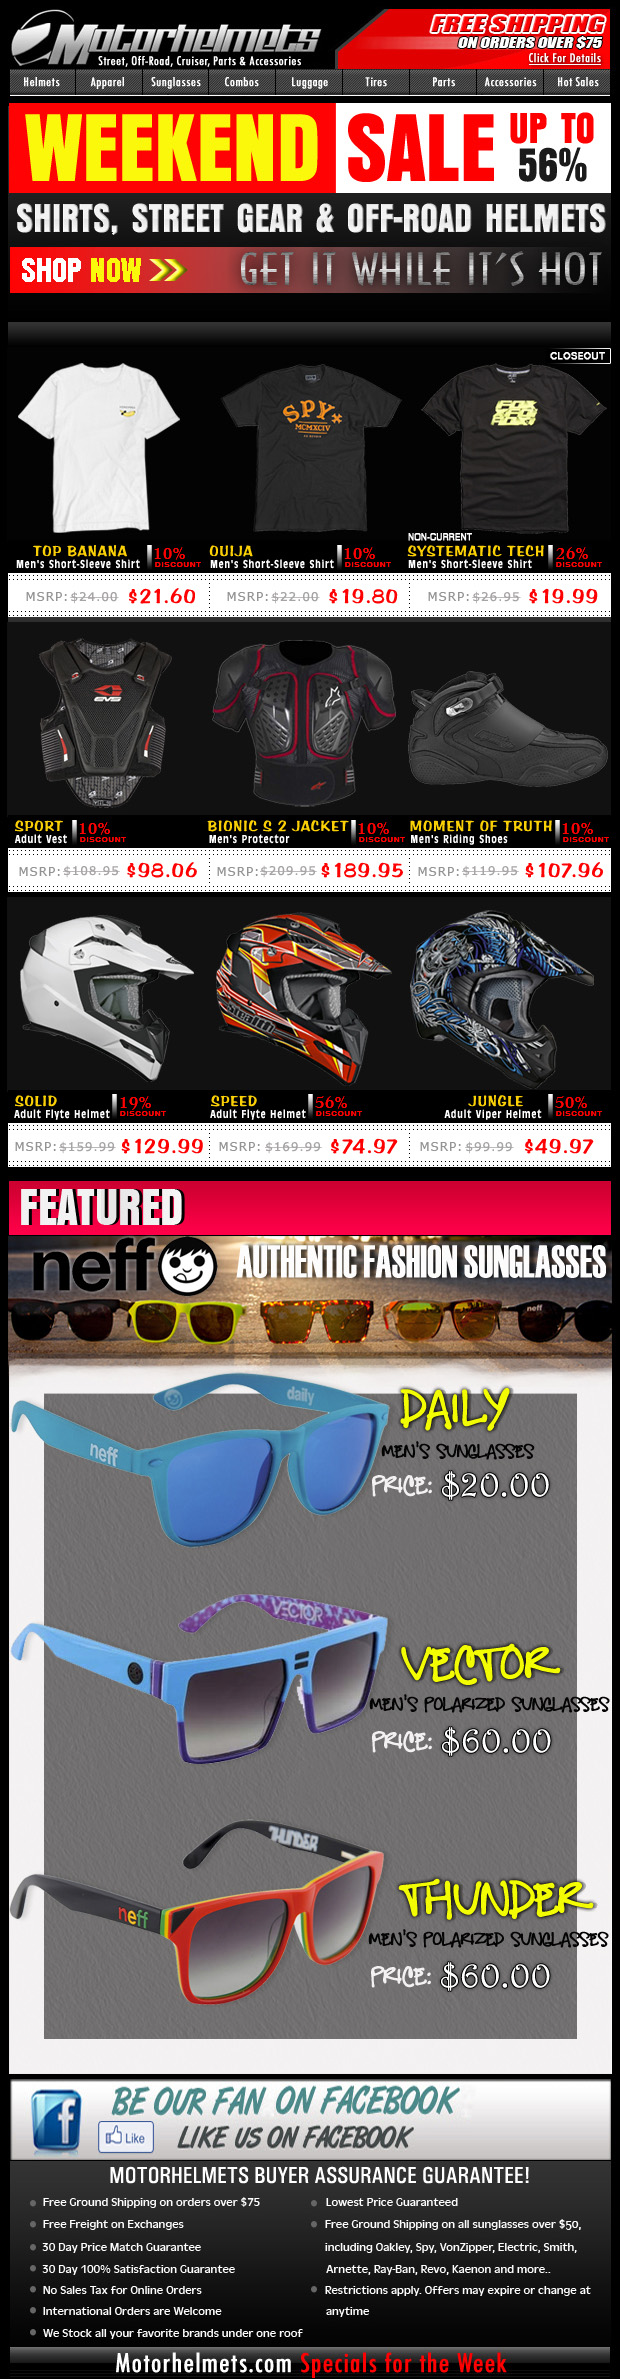 Weekend Sale...up to 56% off on Selected Premium Items from FOX, Spy, VZ and more!